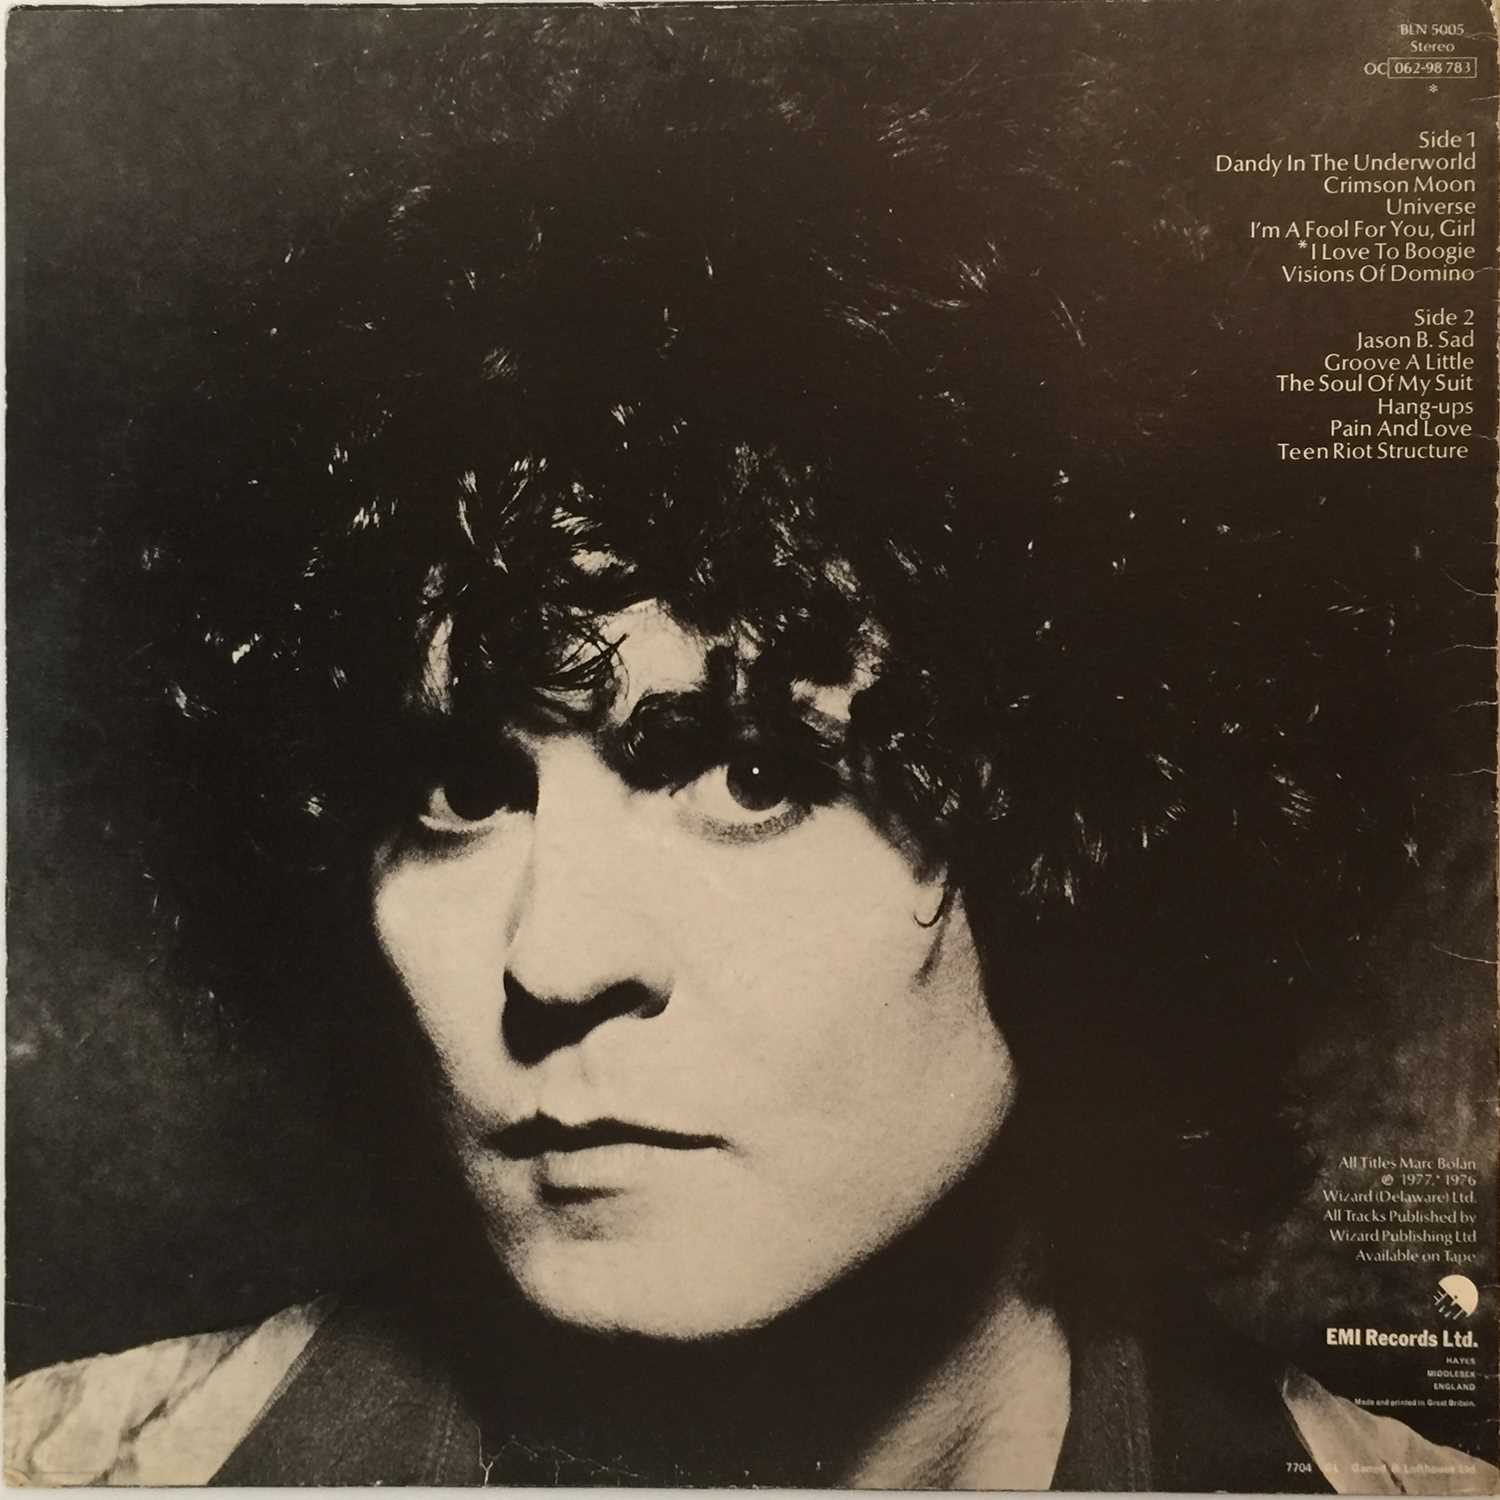 T REX - DANDY IN THE UNDERWORLD LP - WITH PRE-RELEASE PROMO PACK - Image 2 of 5